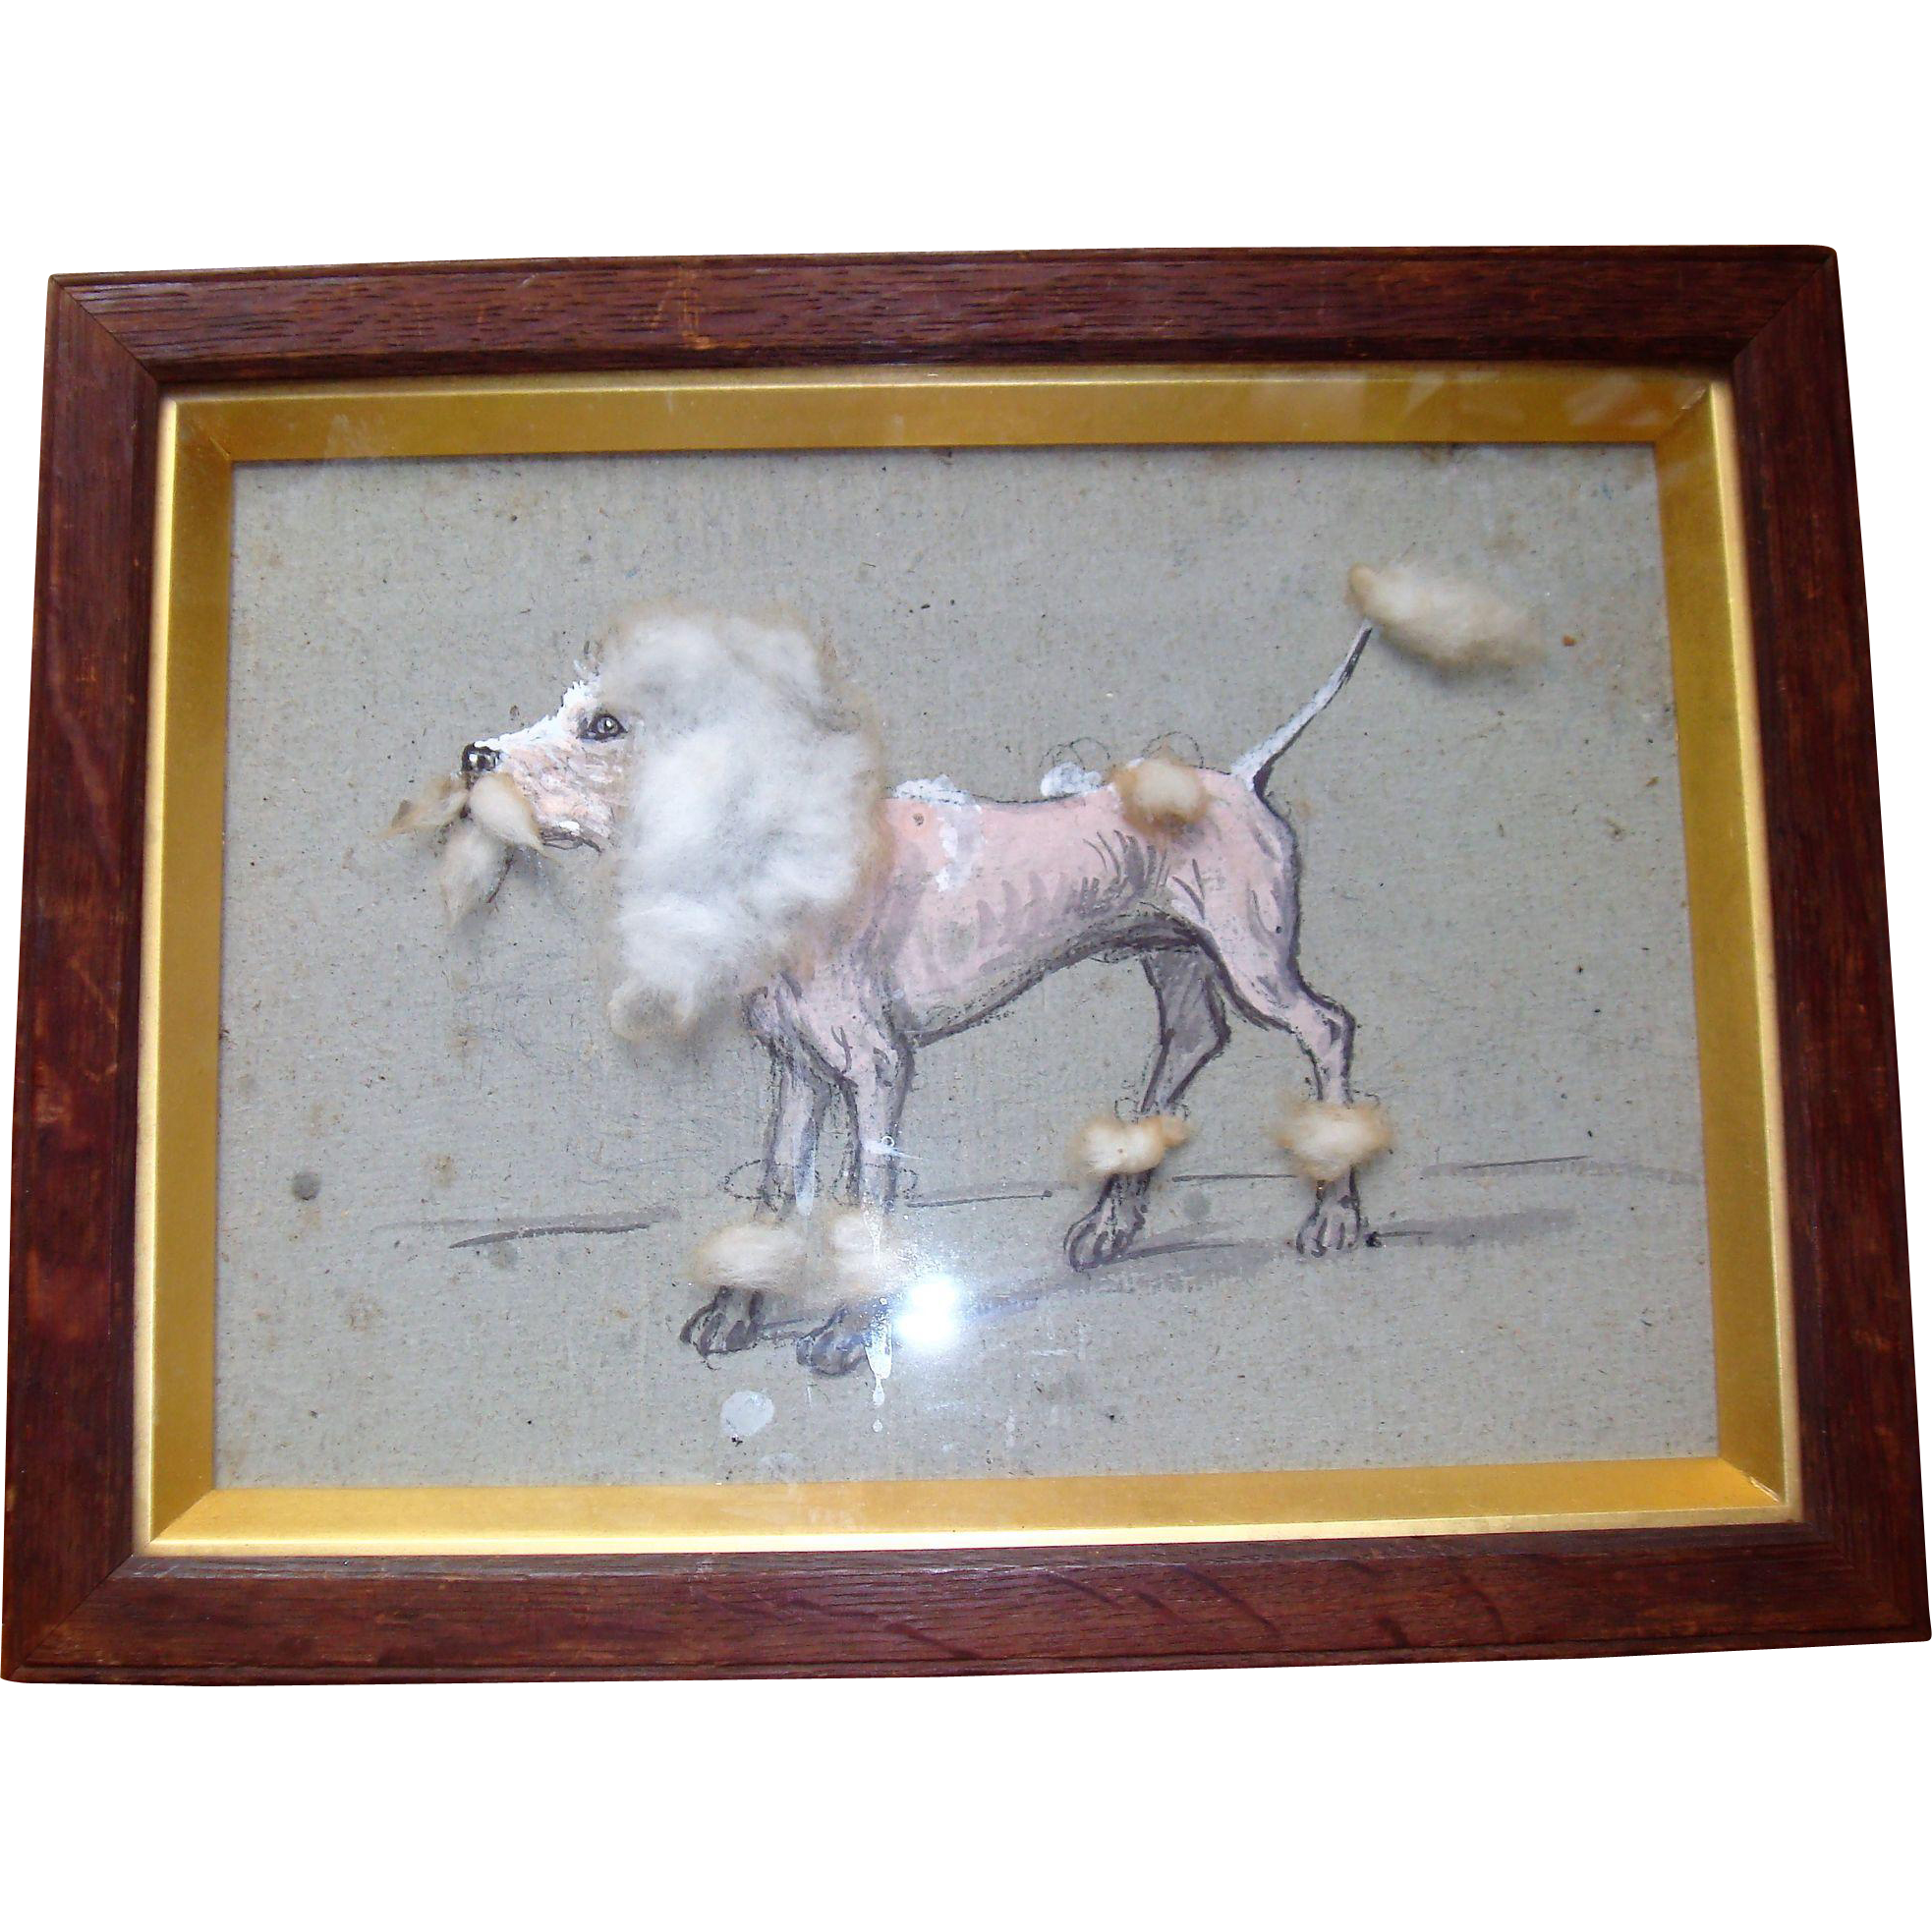 Unusual pastel picture of dog with wool trim